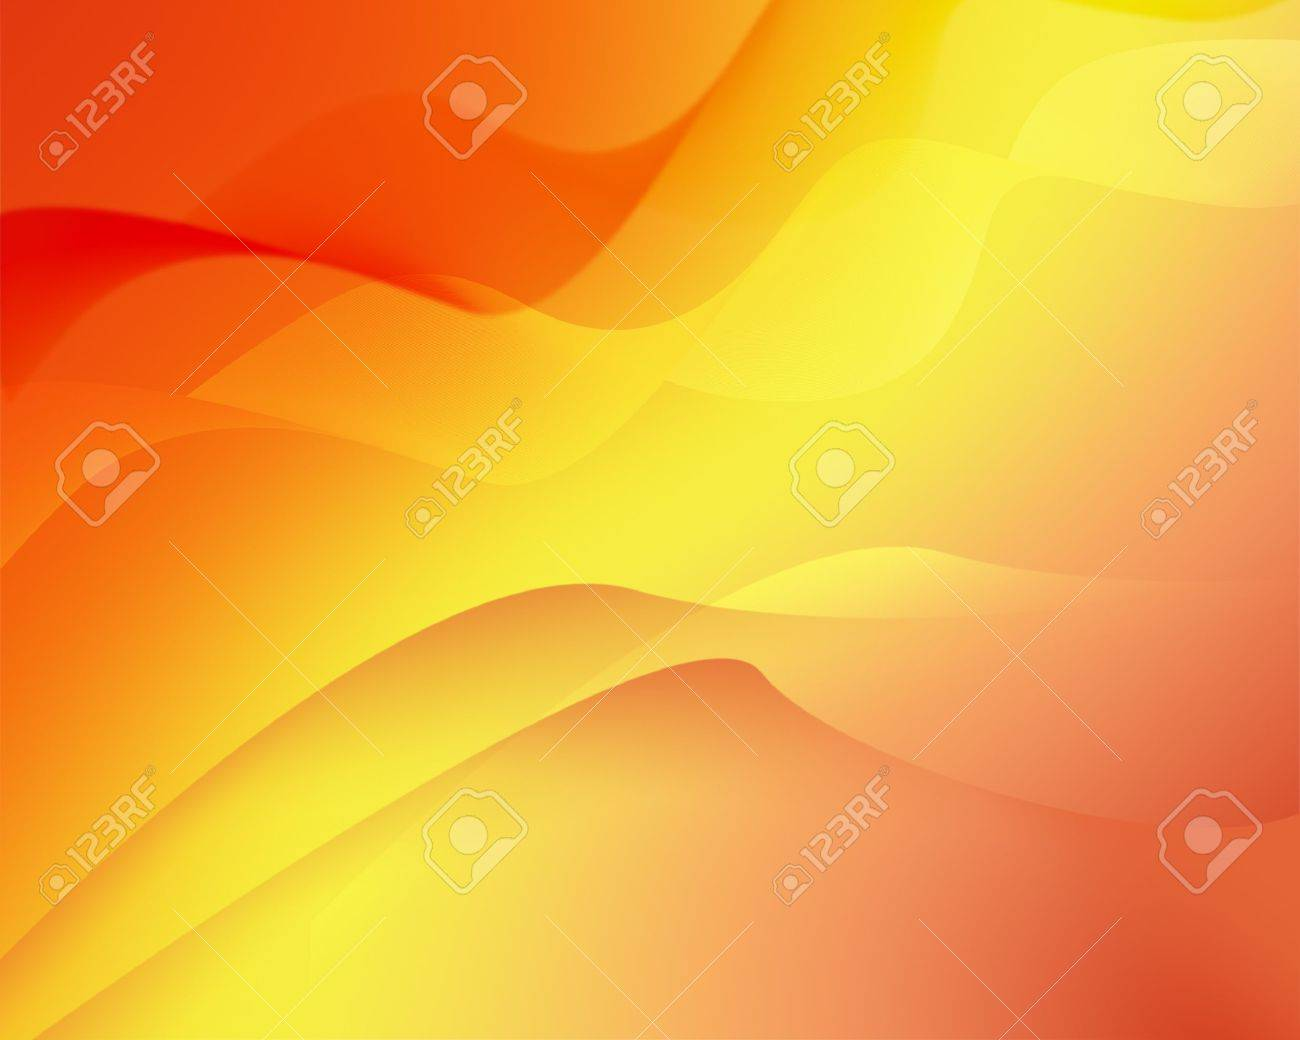 hot, modern vista wallpaper or website background Stock Photo - 4360414